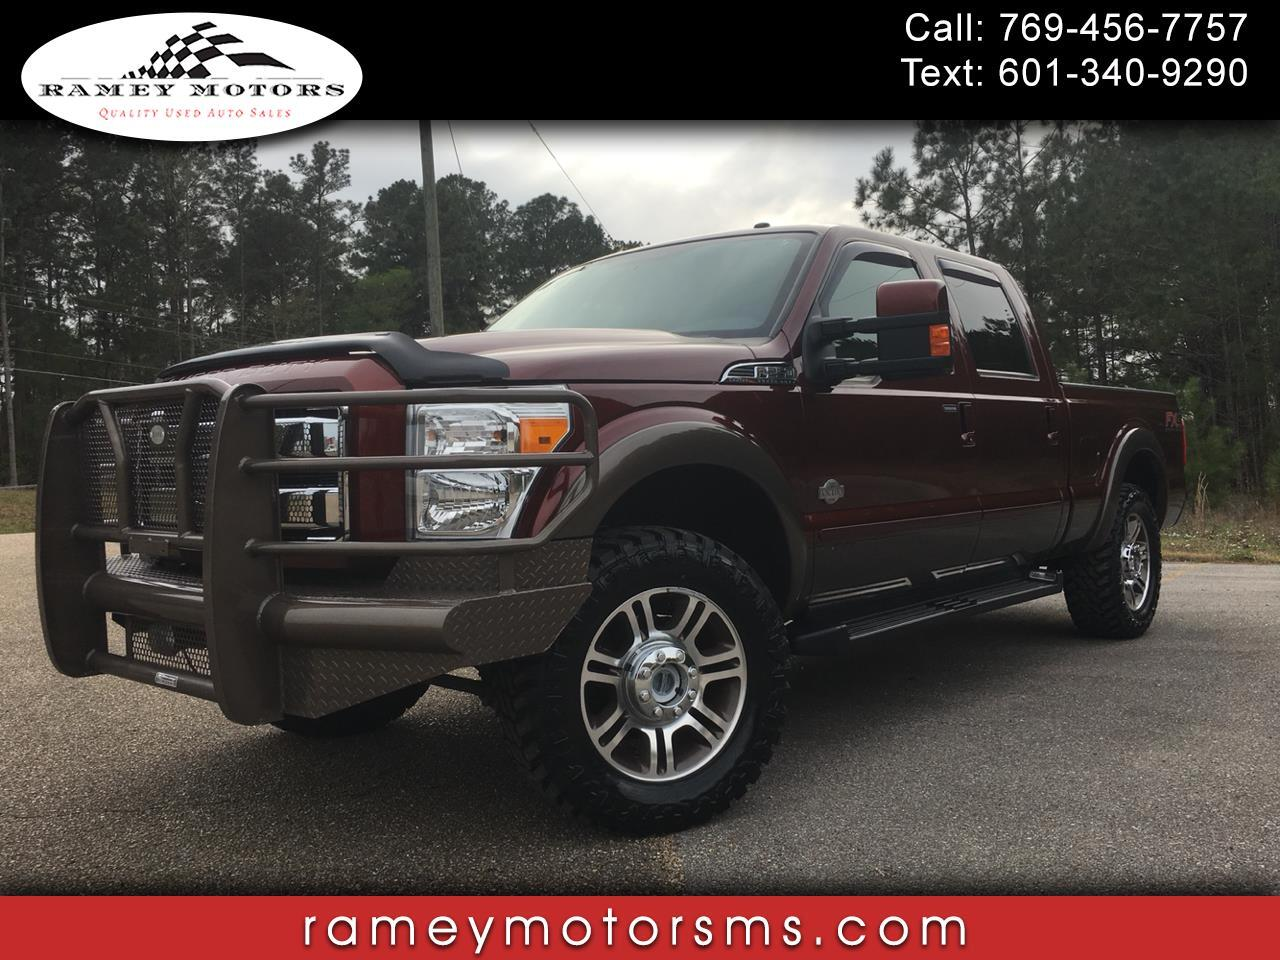 2016 Ford F250 4WD CREWCAB KING RANCH CUSTOM LEVELED